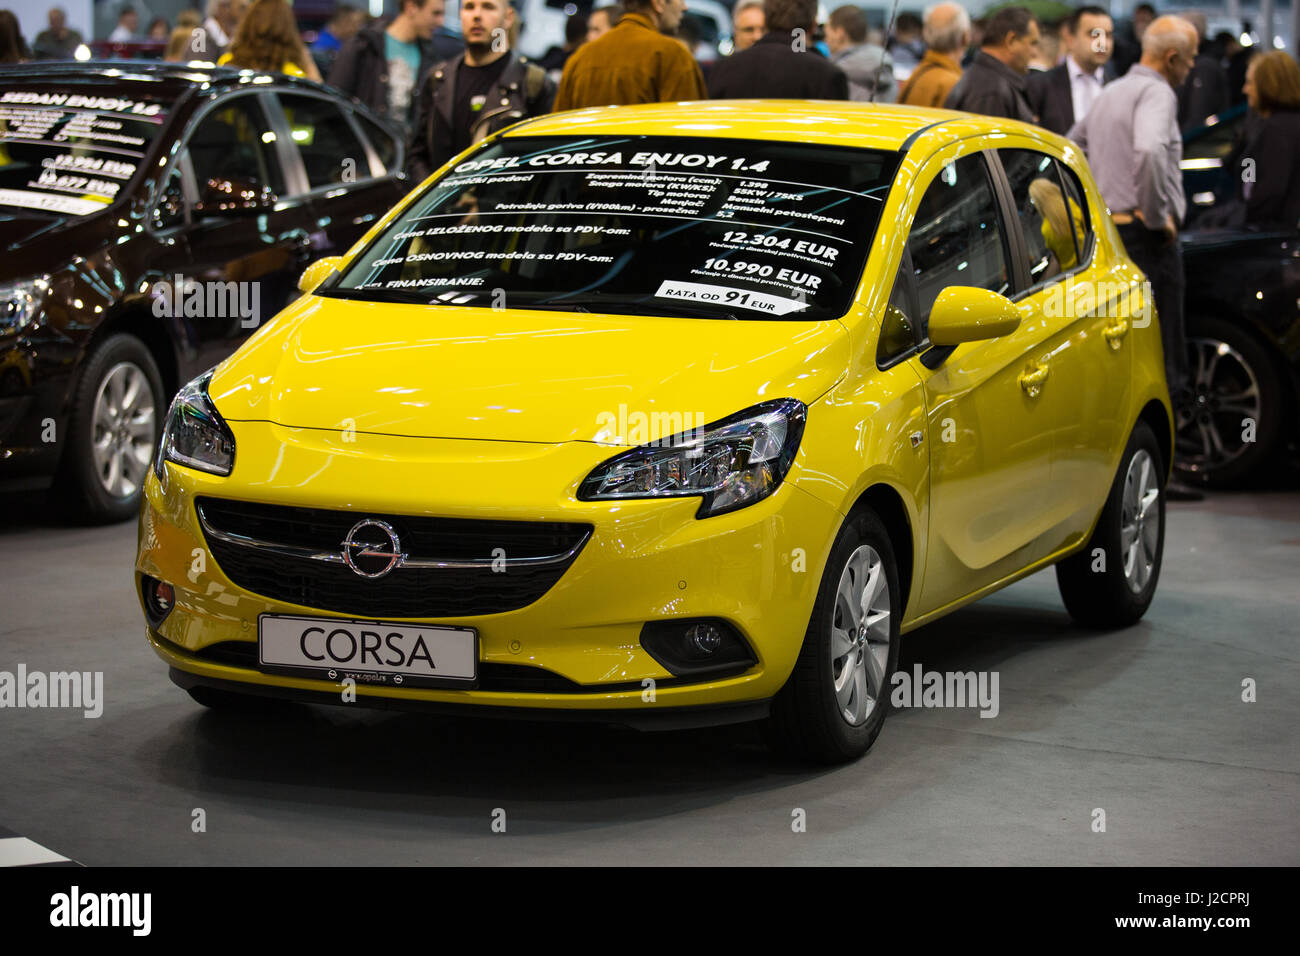 Opel Corsa 2010: beauty and style 20